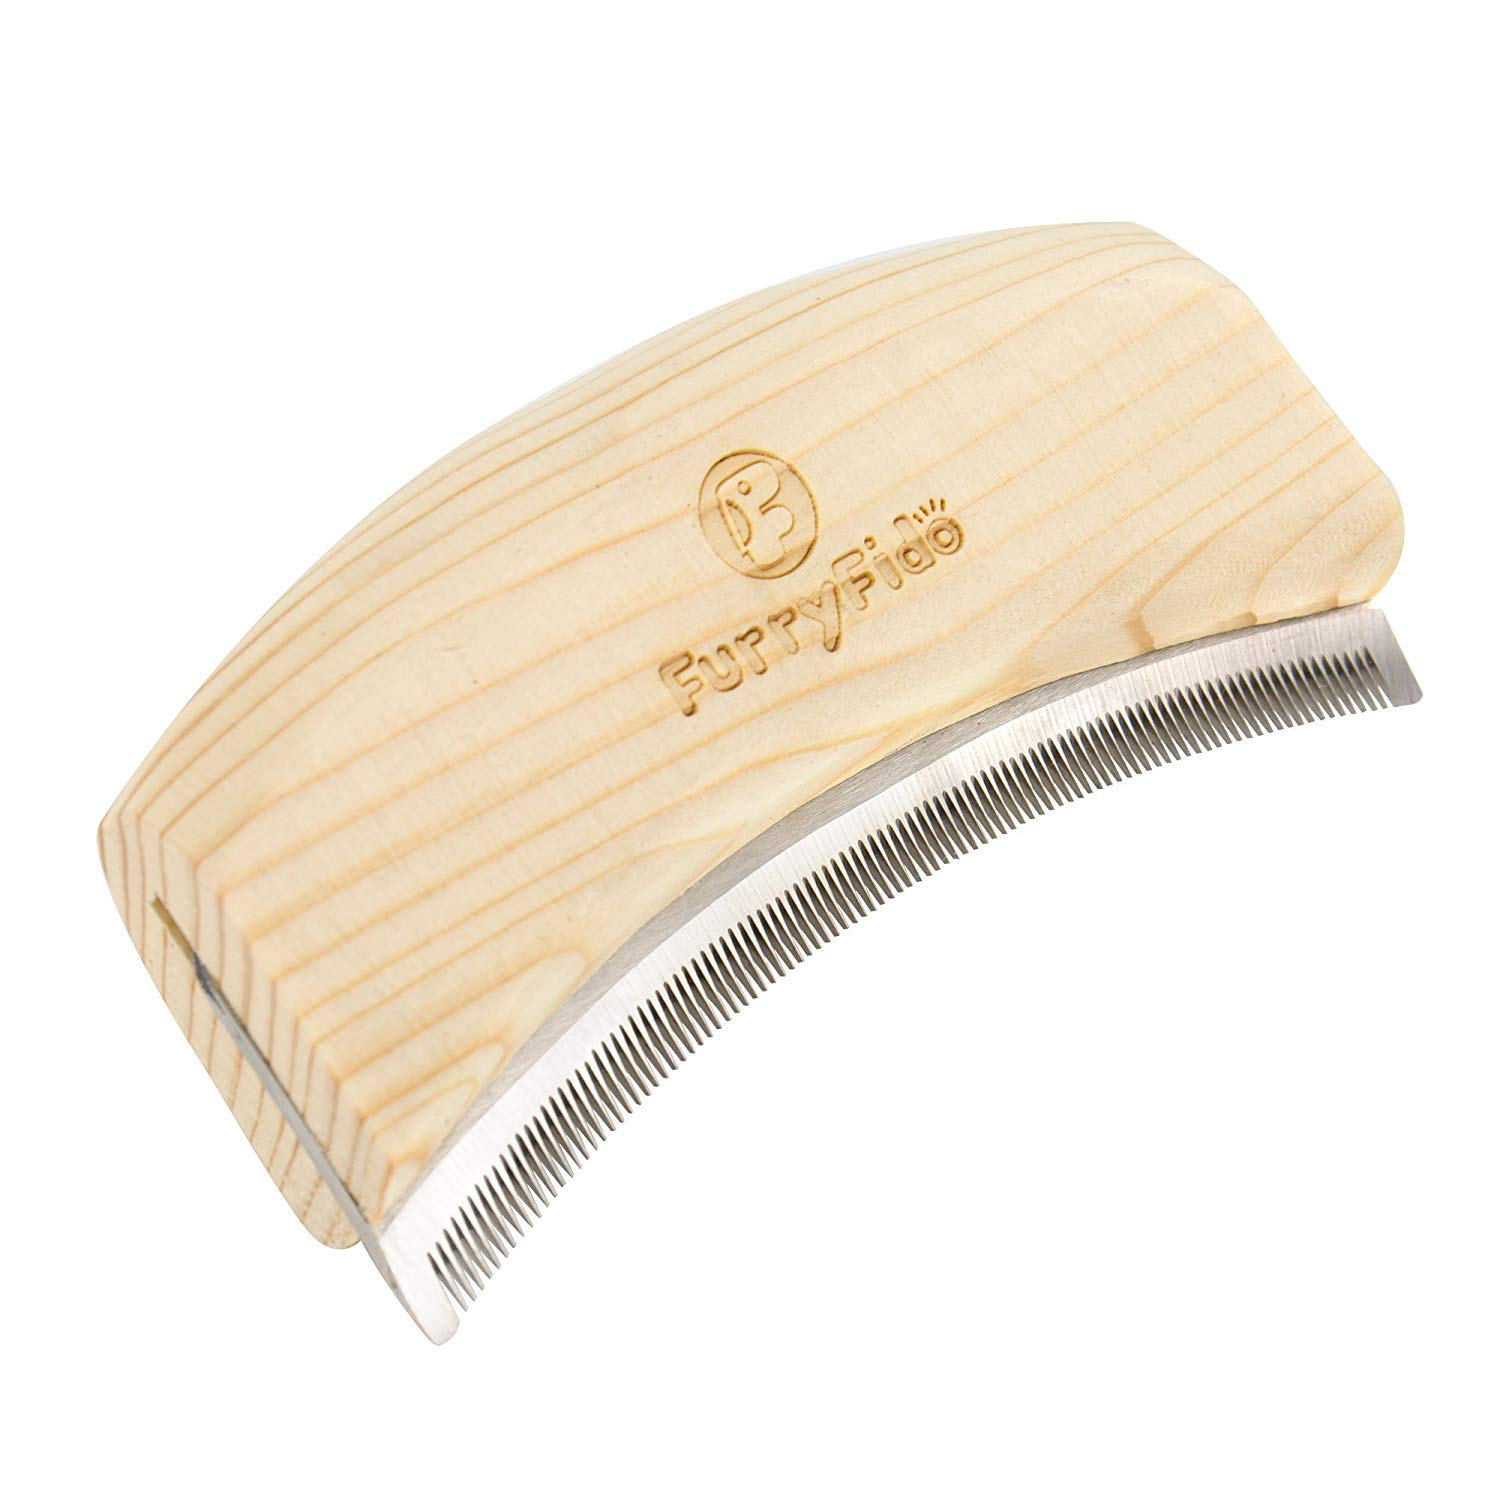 FURRY FIDO DeShedding Tool/Brush/Comb by Furryfido Effective Wooden Grooming/Trimming Tool/Rake for Shedding Dogs/Cats/Horse Especially for Long Hair/Fur Removal